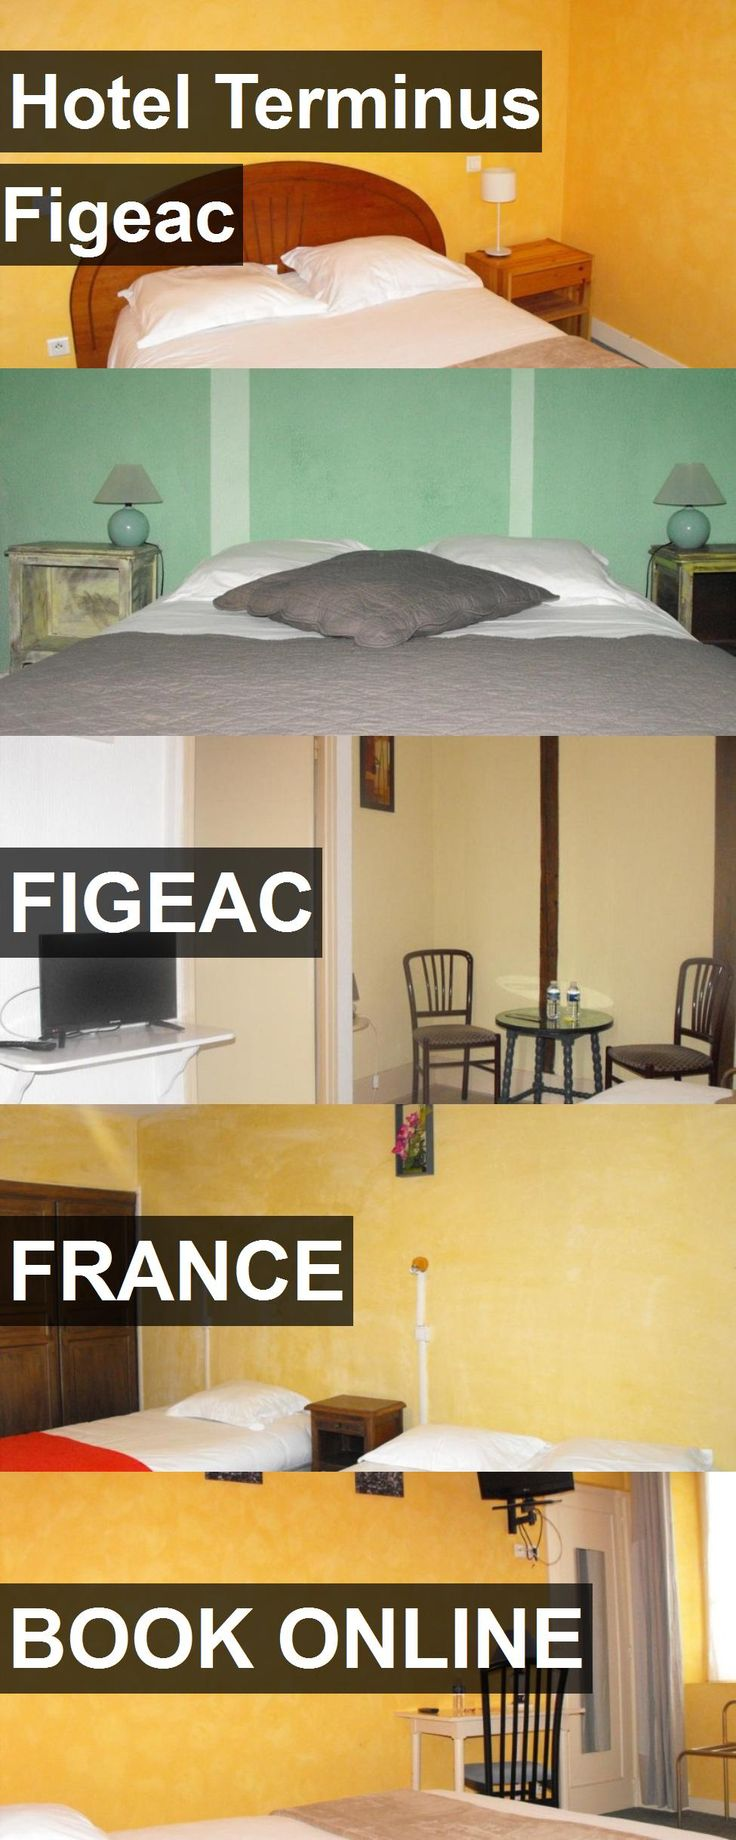 Hotel Terminus Figeac in Figeac, France. For more information, photos, reviews and best prices please follow the link. #France #Figeac #travel #vacation #hotel